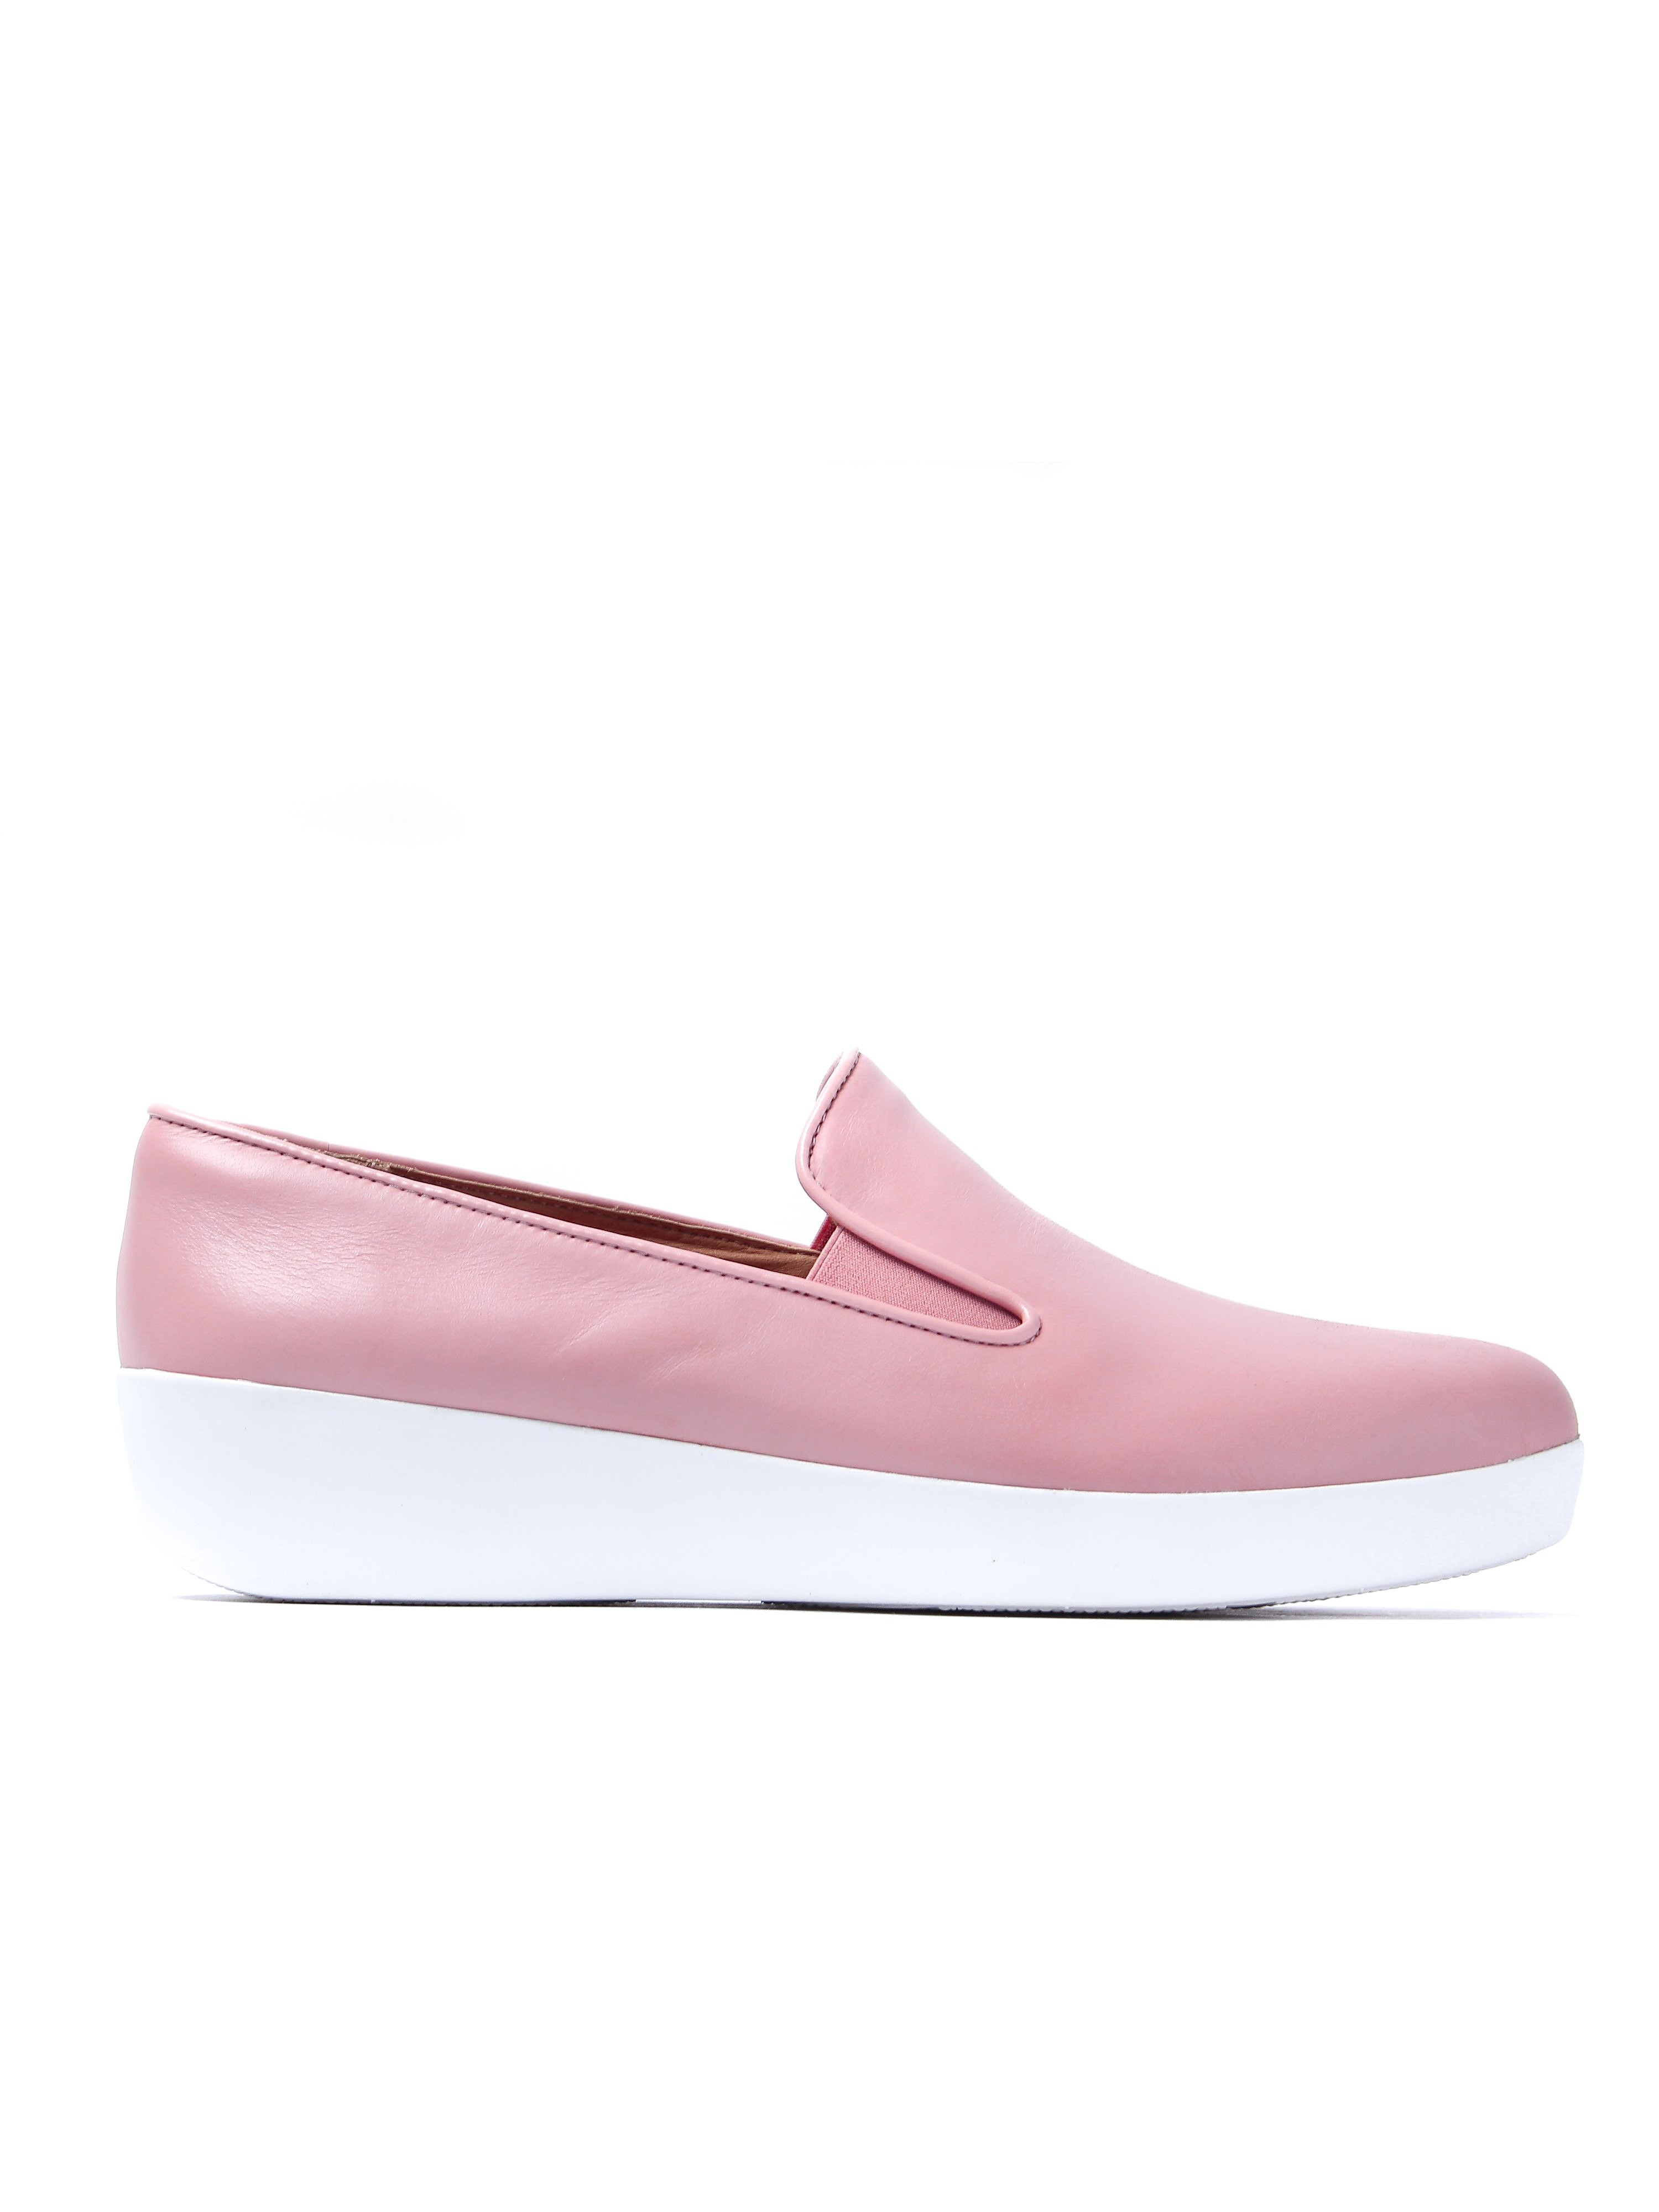 FitFlop Women's Superskate Loafers - Dusky Pink